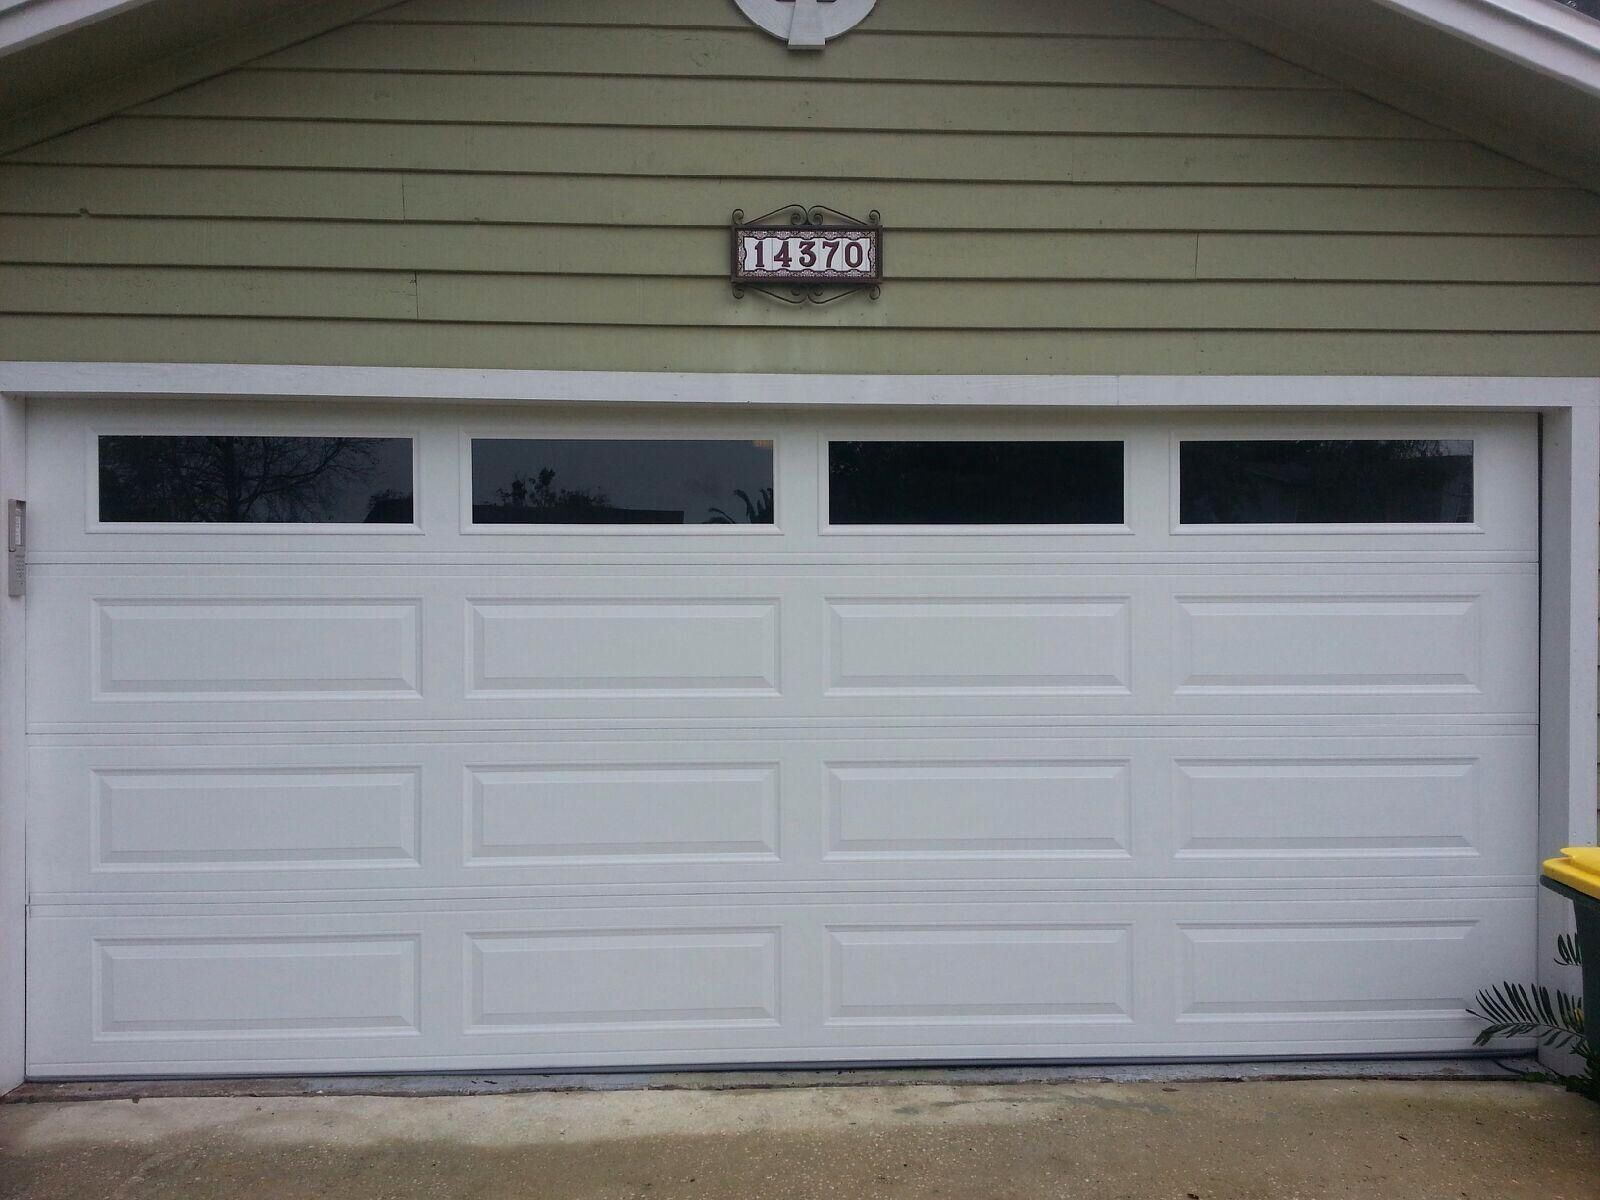 Classica northampton garage door white 9 x 8 no windows - Amarr Long Panel Garage Door With Solid Windows Gives This Home In Jacksonville A More Modern